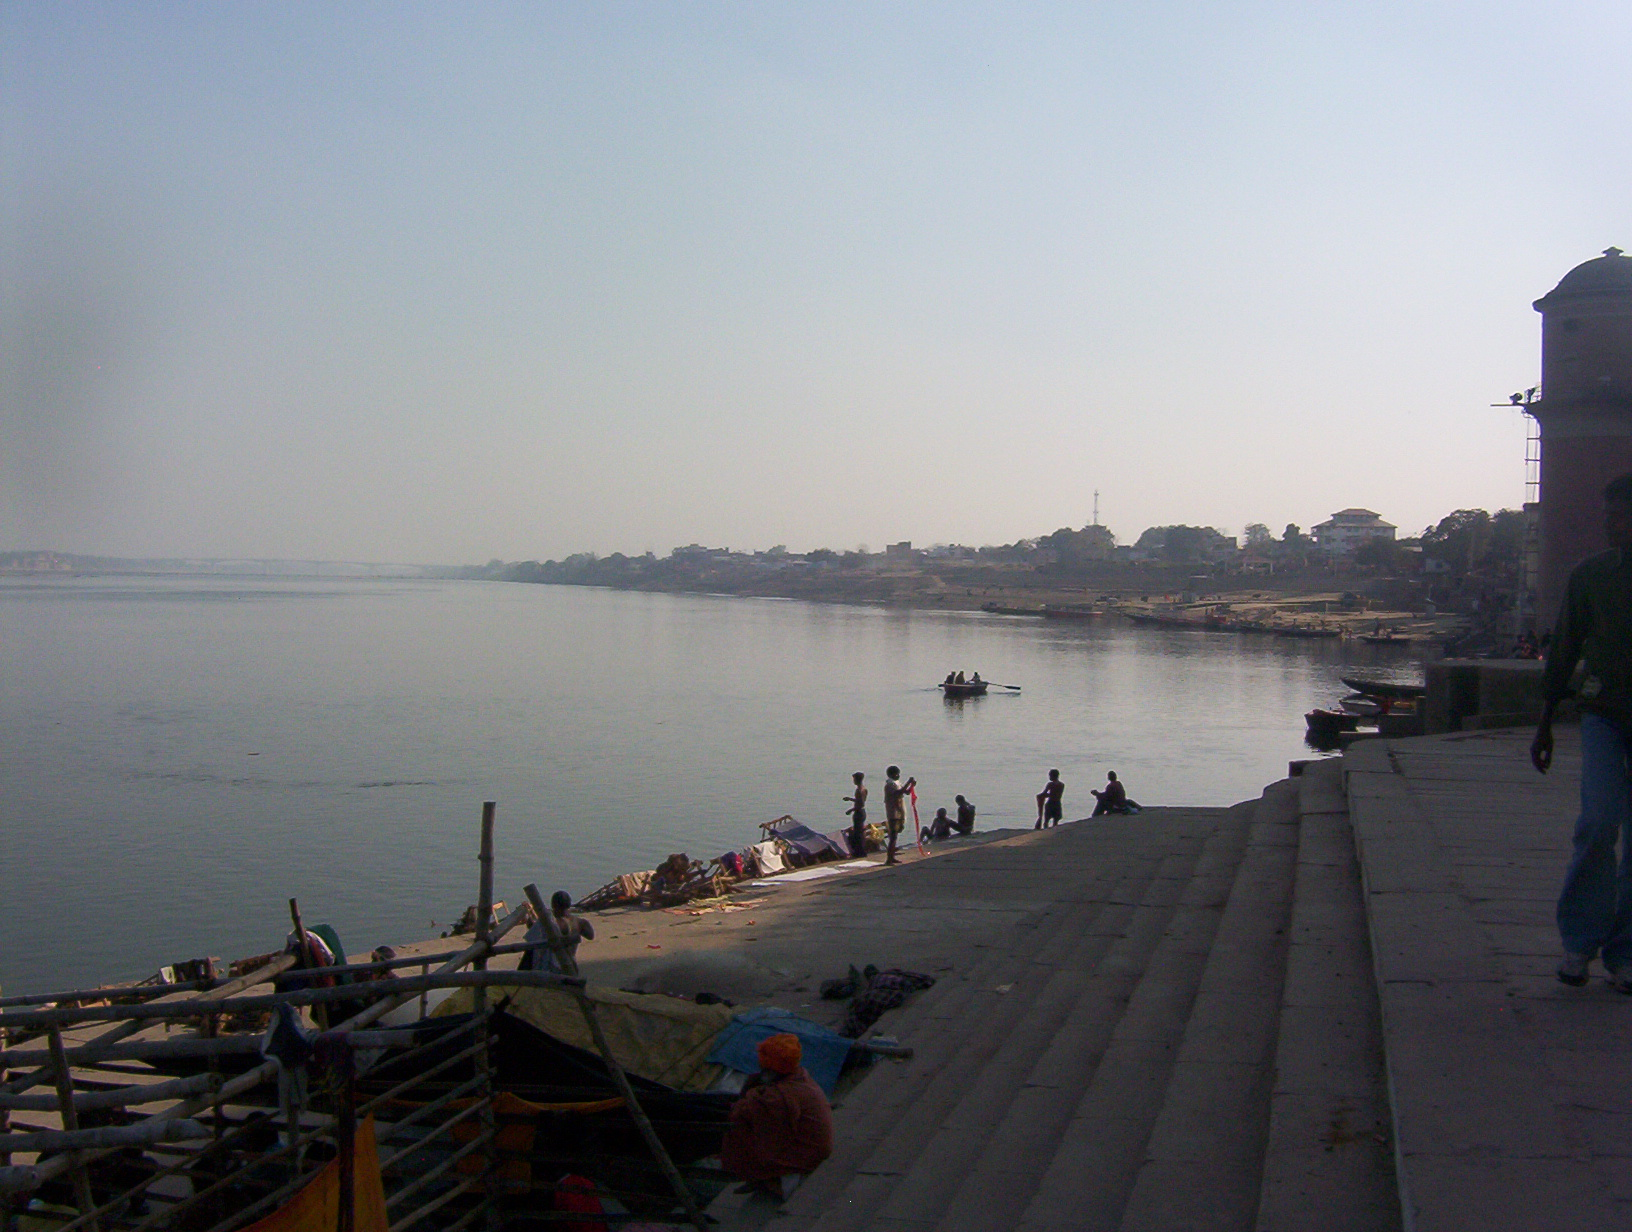 The placid Ganga from its ghats...